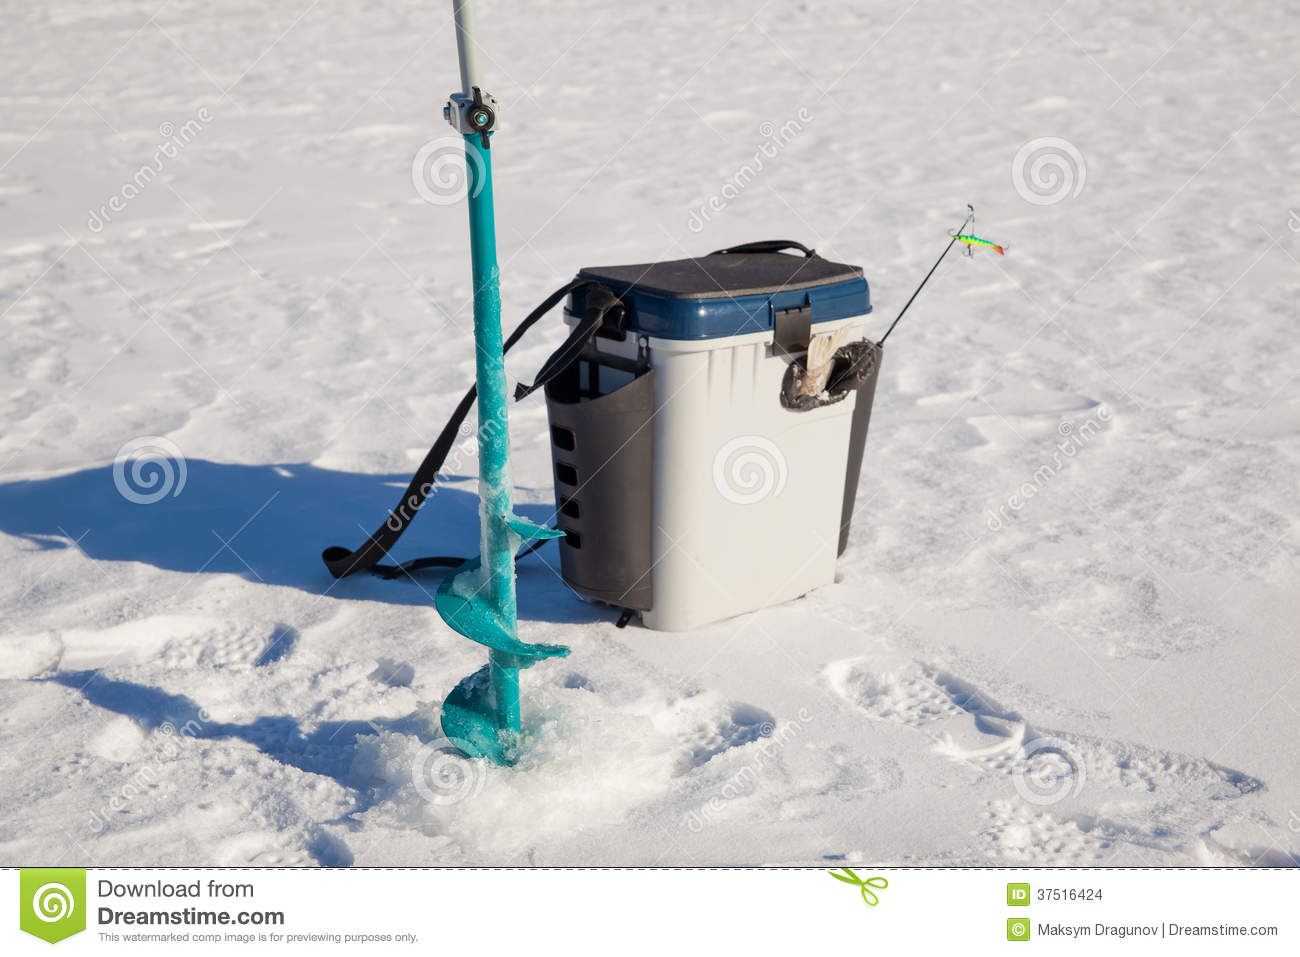 ice fishing accessories stock images - image: 37516424, Reel Combo